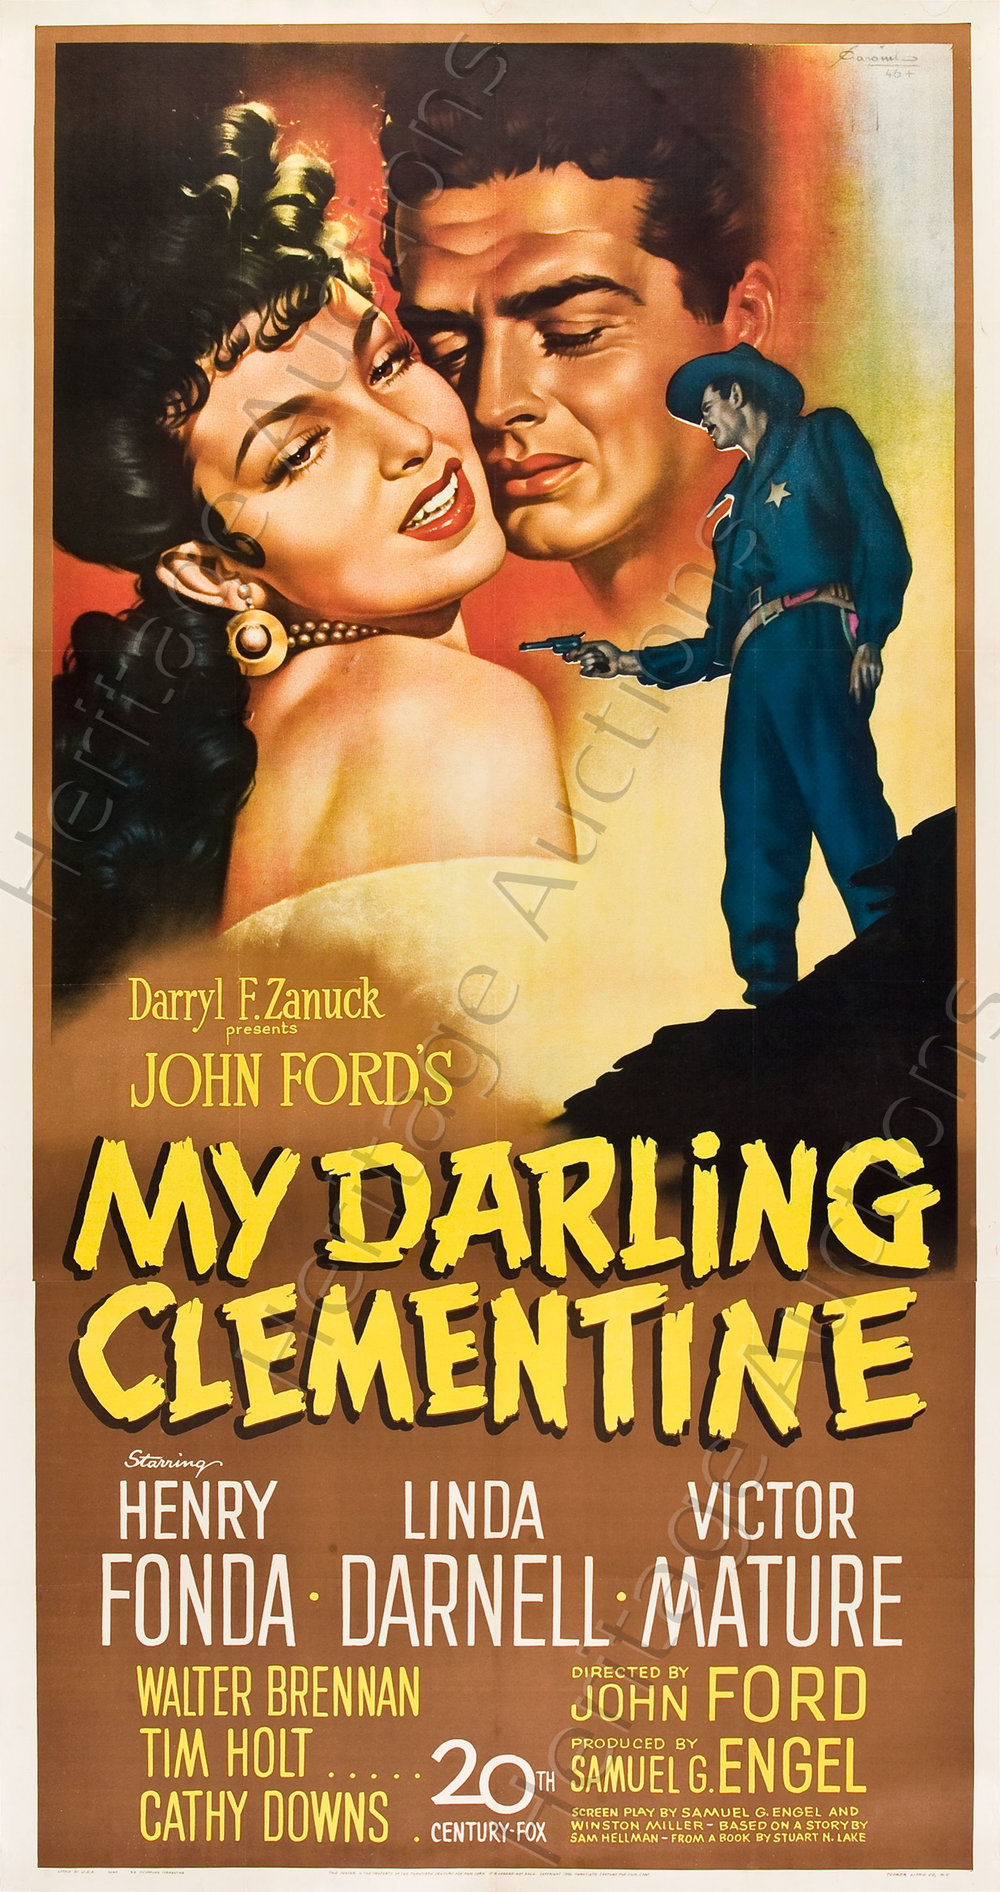 009-my-darling-clementine-theredlist.jpg